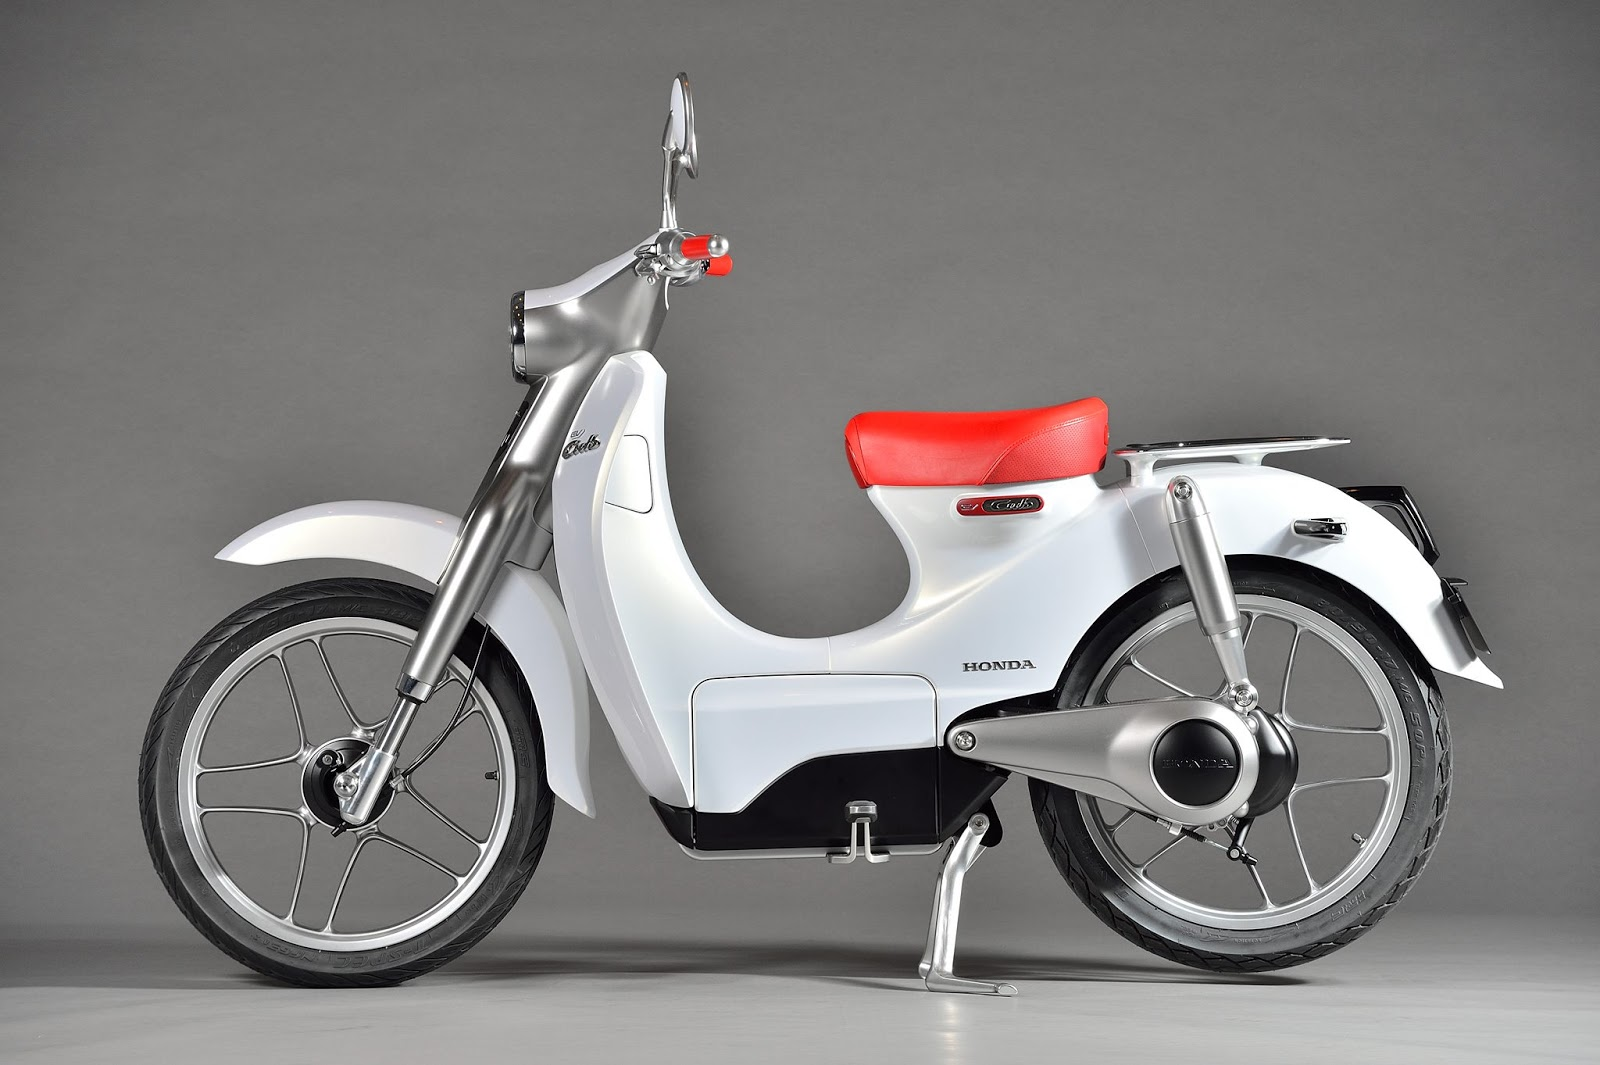 Honda Ev Cub Electric Scooter Displayed At Auto Expo 2016